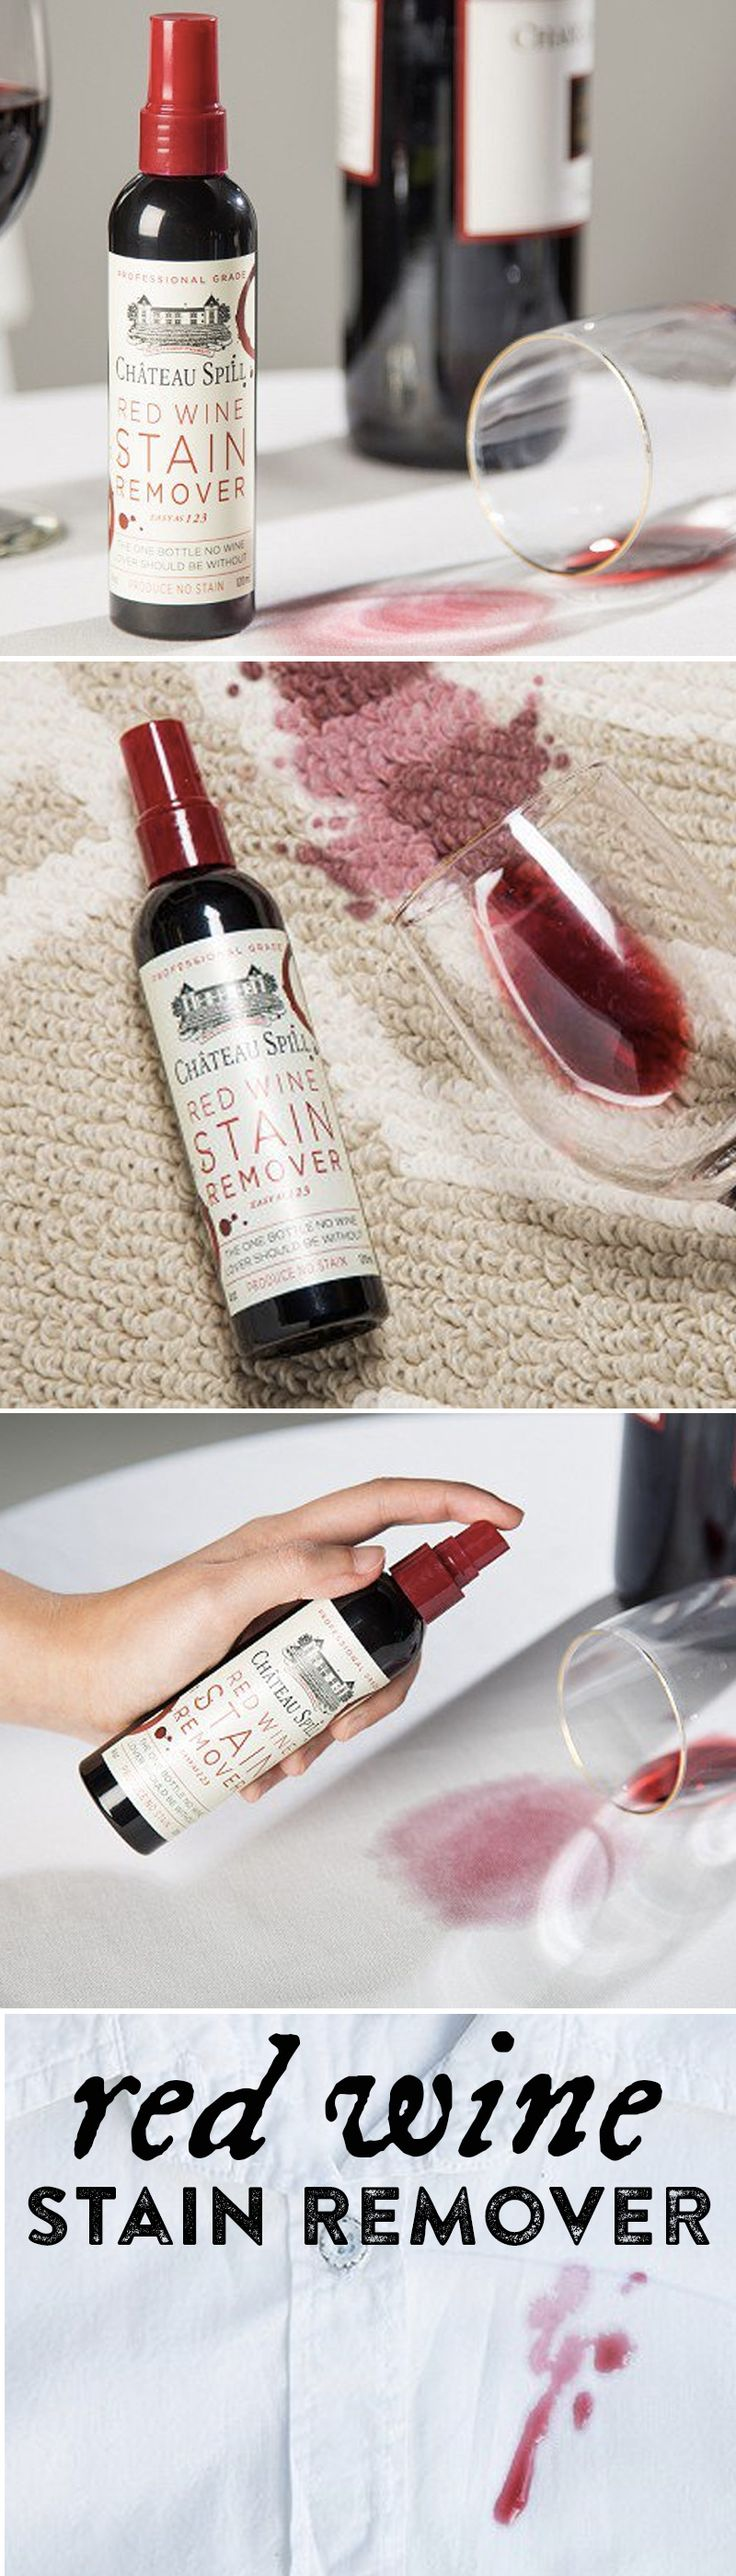 1000 ideas about wine stains on pinterest remove wine for Get out red wine stain white shirt